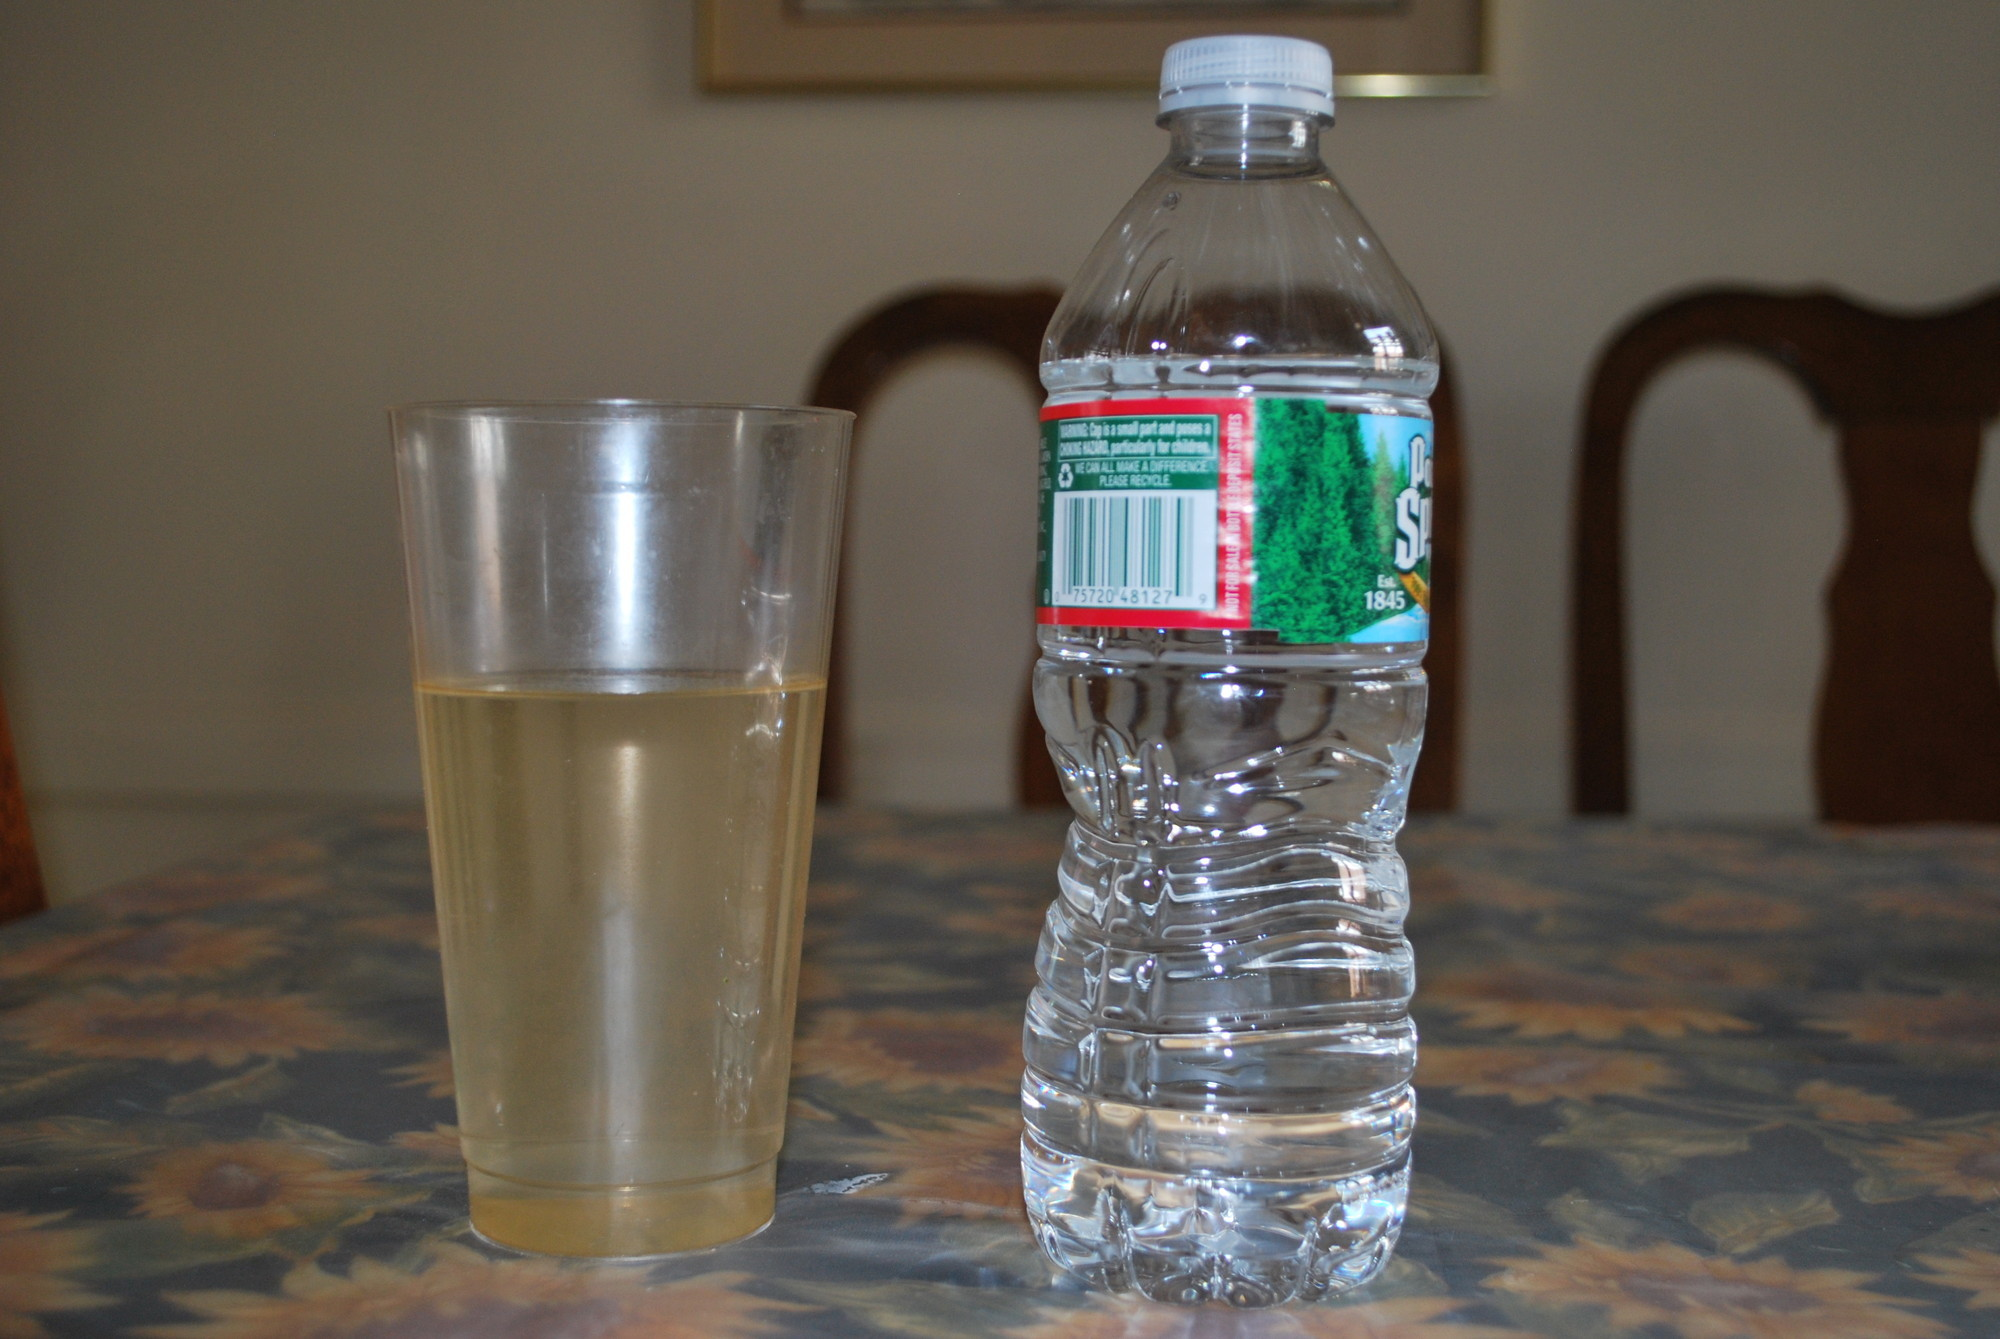 Treating the Five Towns brown water